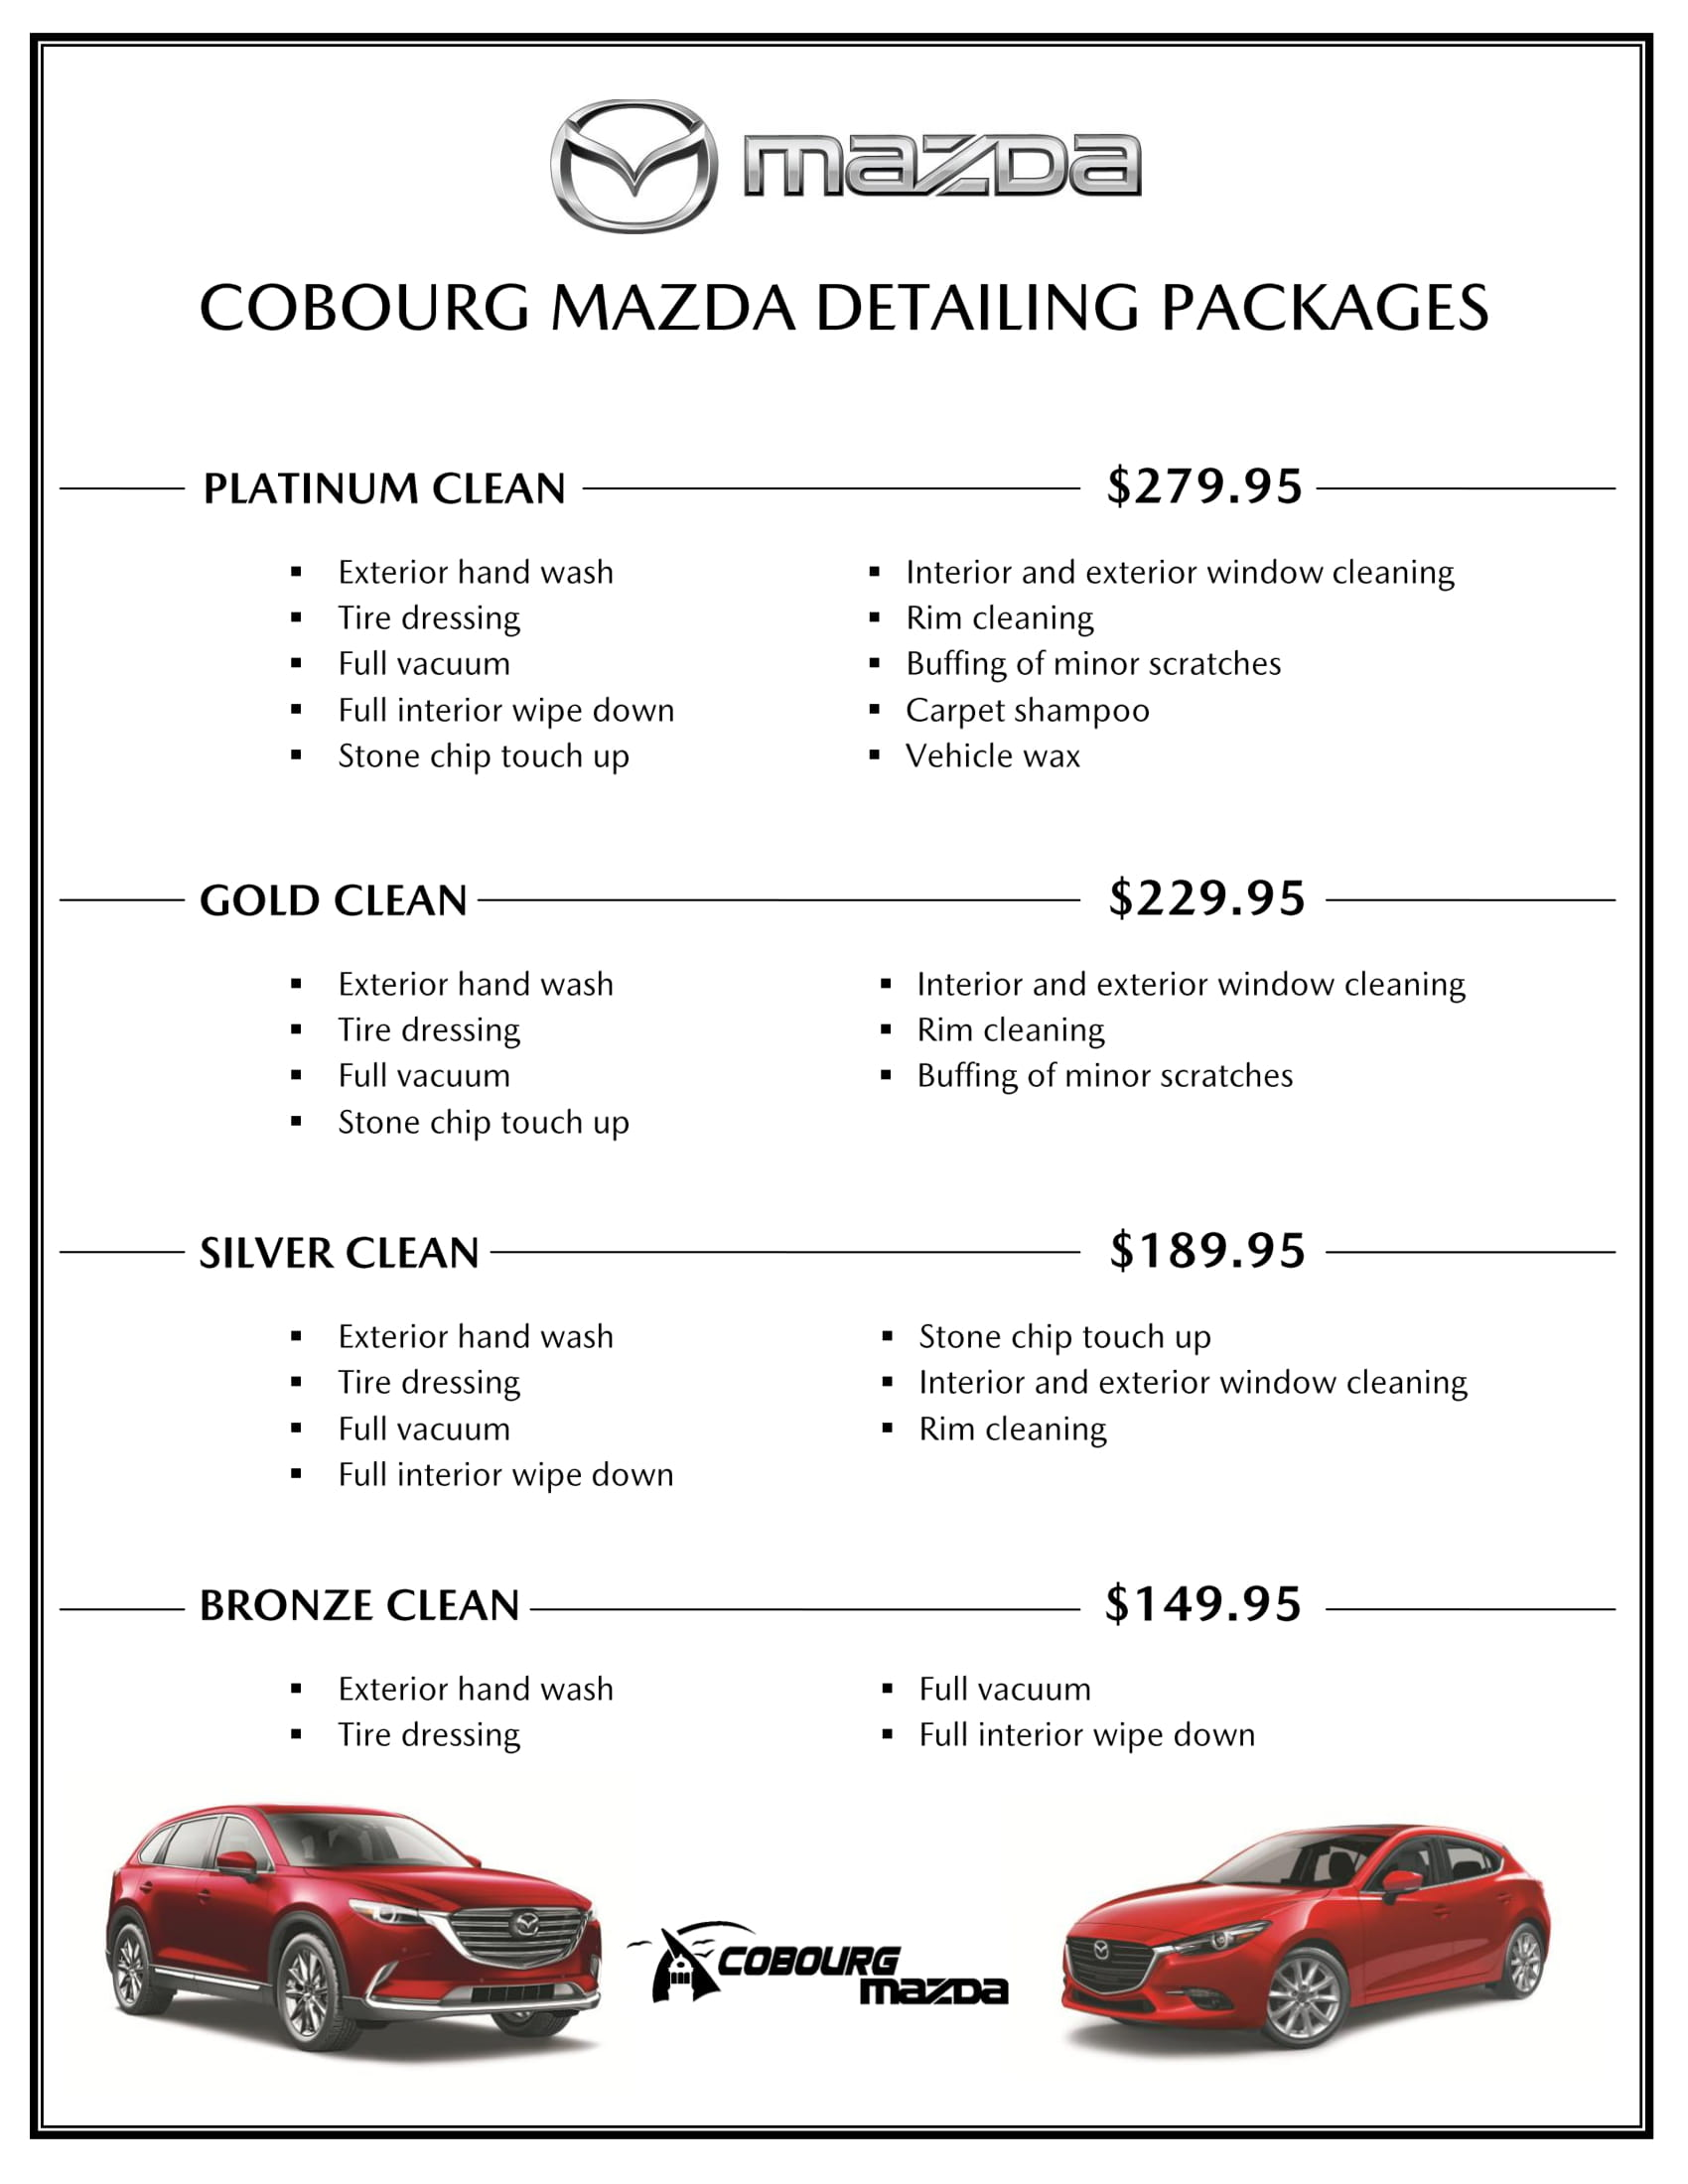 Detail Packages 2019-1